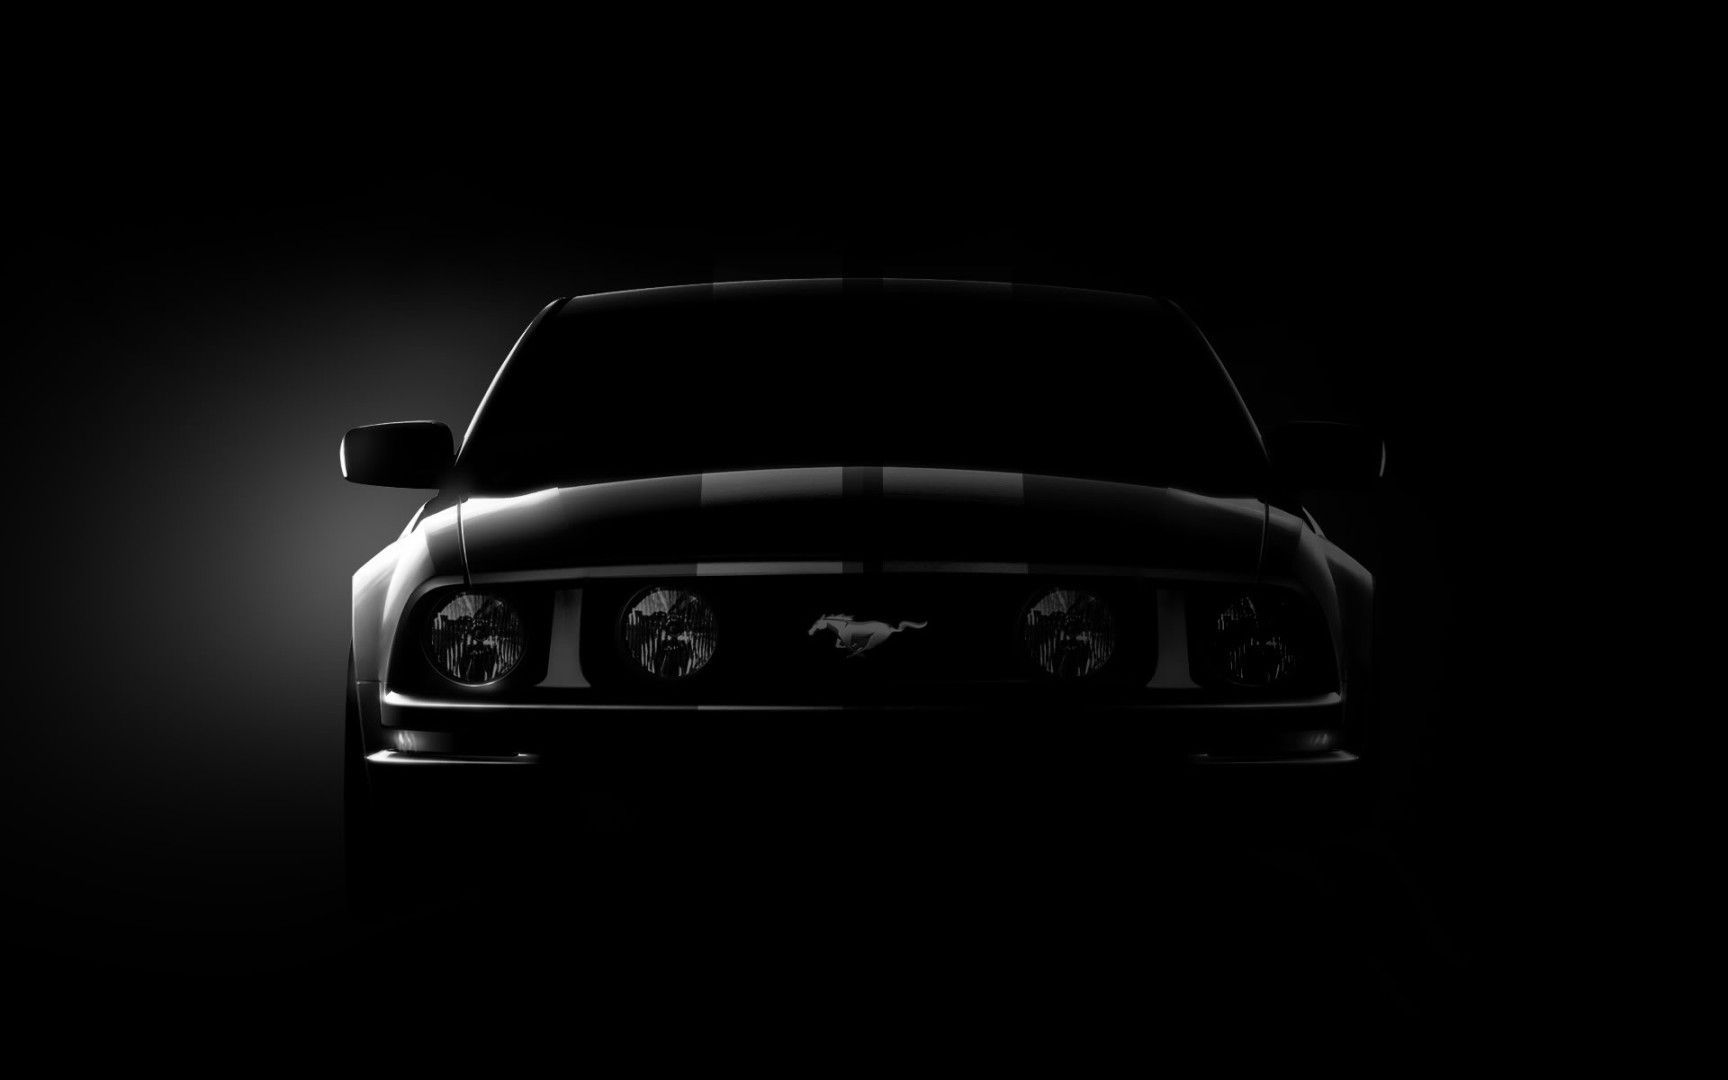 Black Ford Mustang Wallpapers Top Free Black Ford Mustang Backgrounds Wallpaperaccess